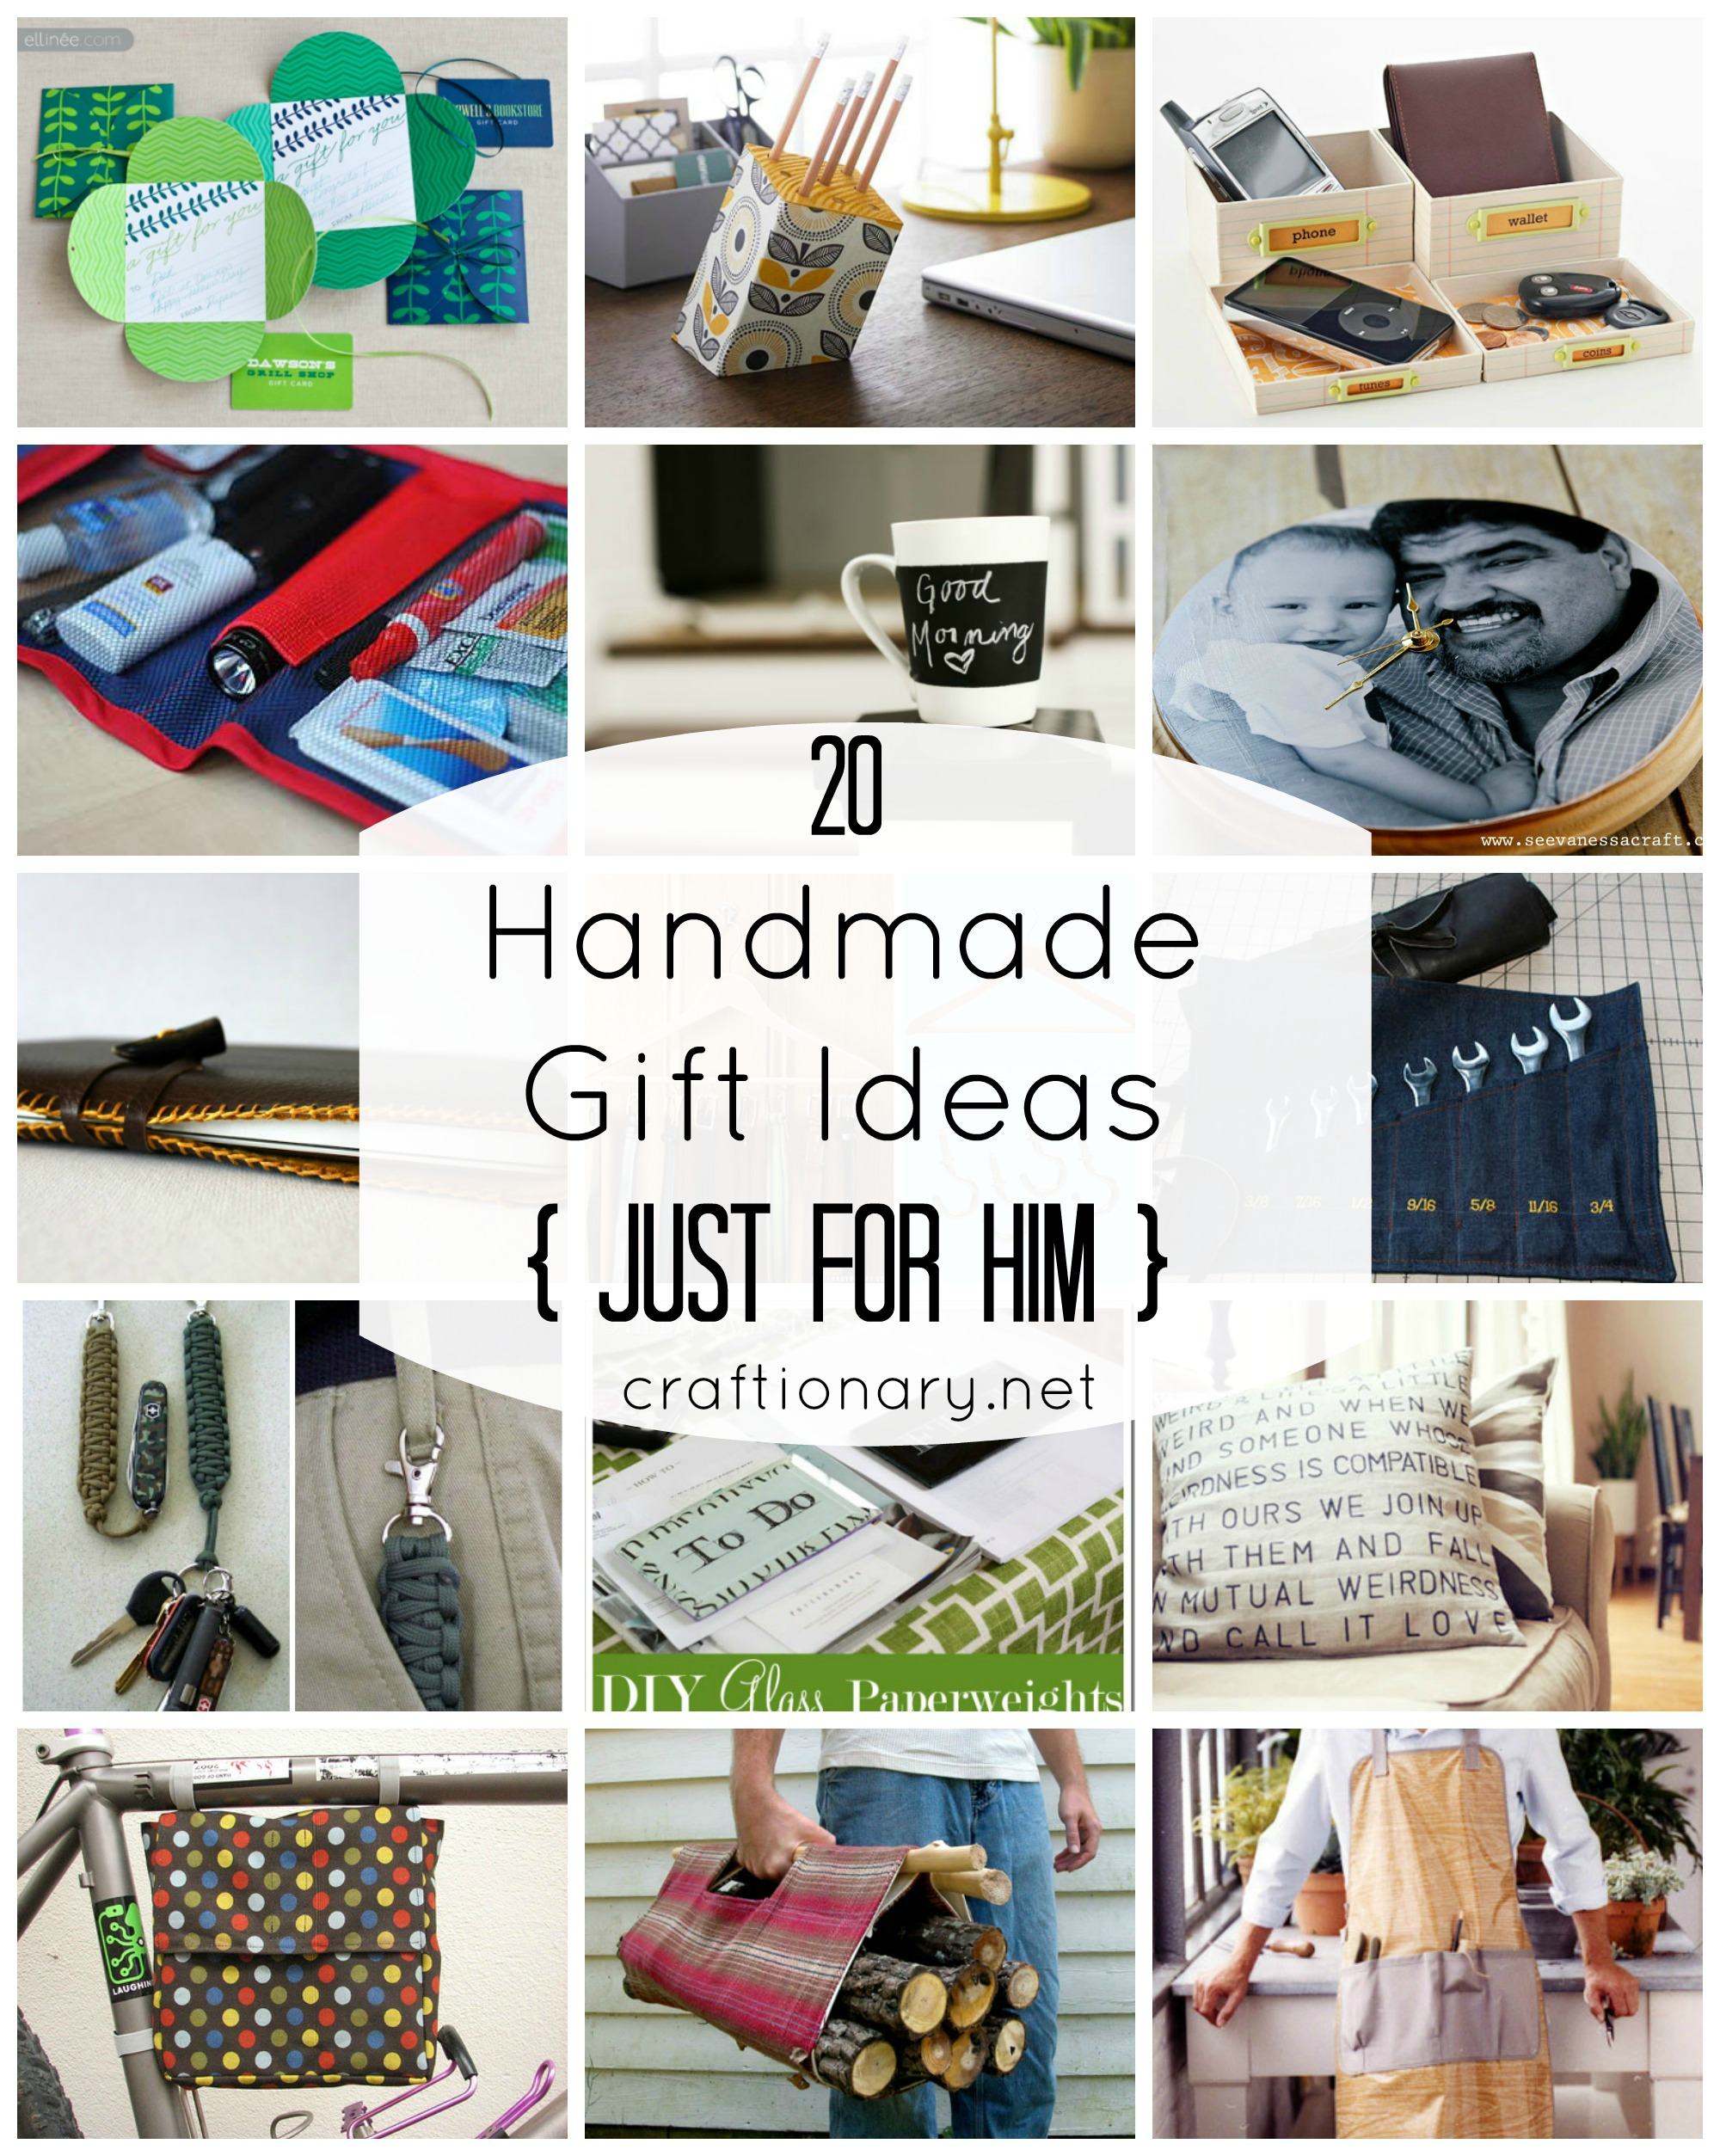 Wedding Gift Ideas For Guys : 20 Men Gift Ideas {Just for HIM}